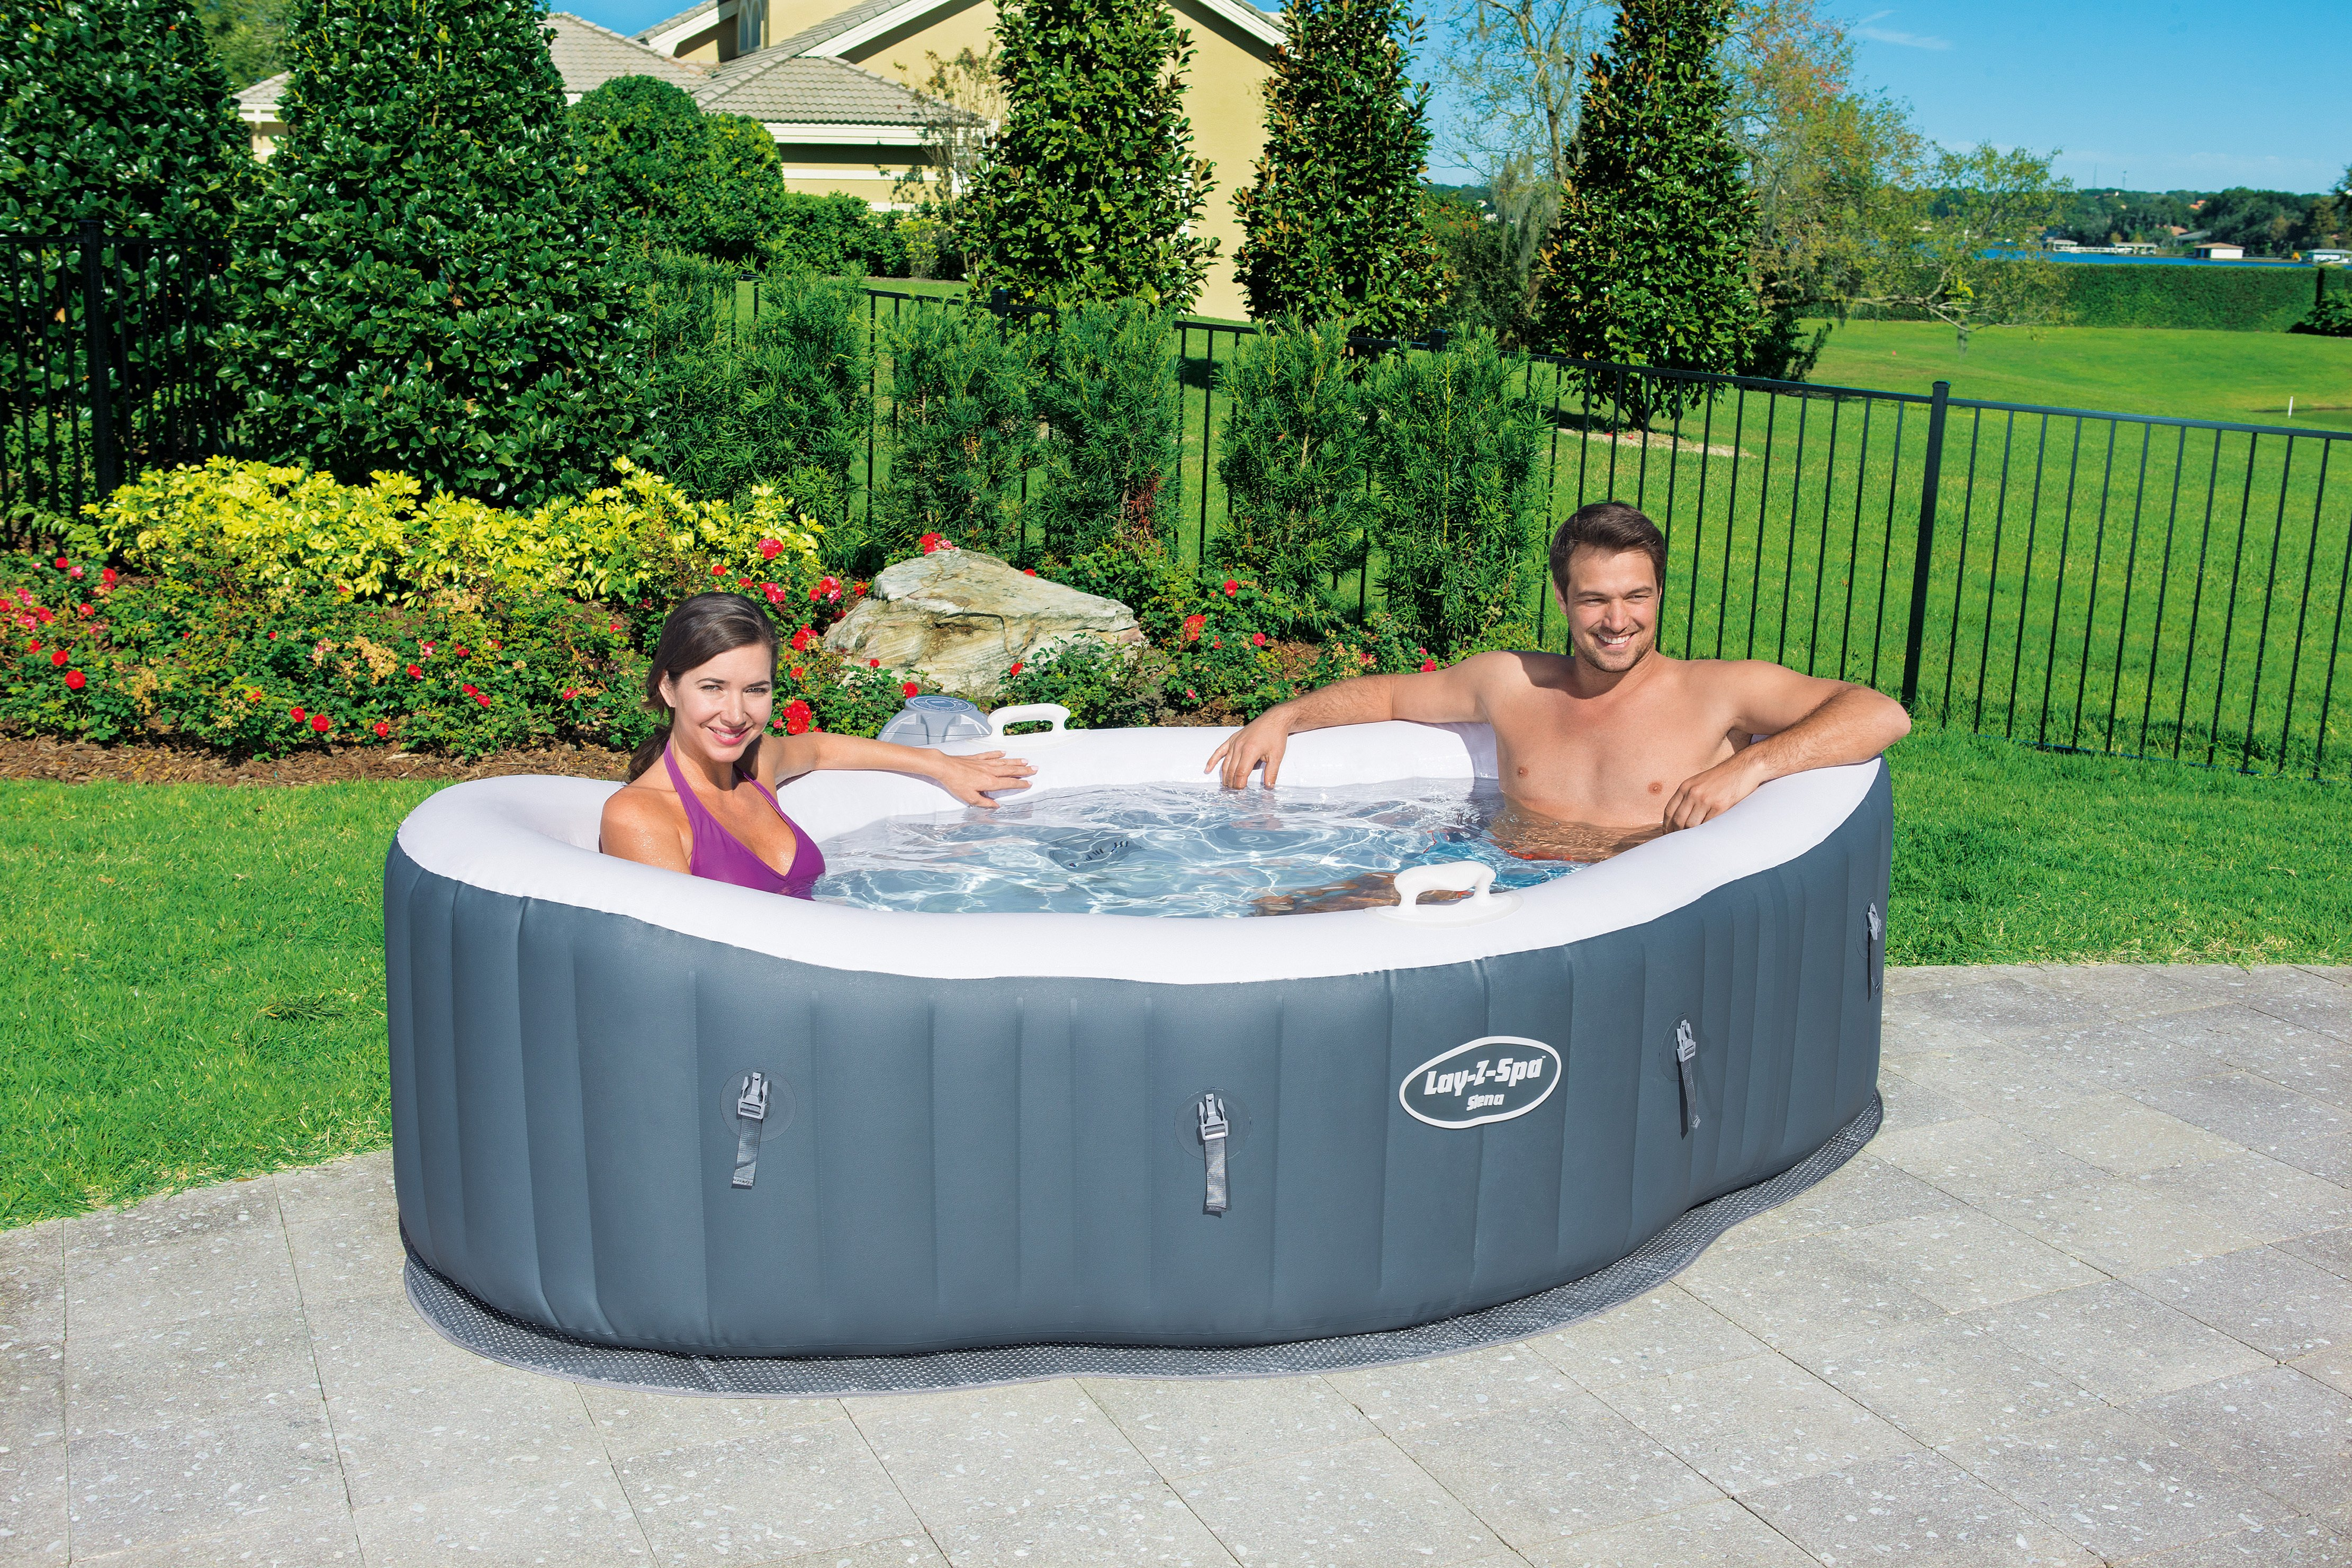 Jacuzzi Pool Argos Argos Hot Tube 220 240v 50hz 2050w At 20 Pre Tested Pump And